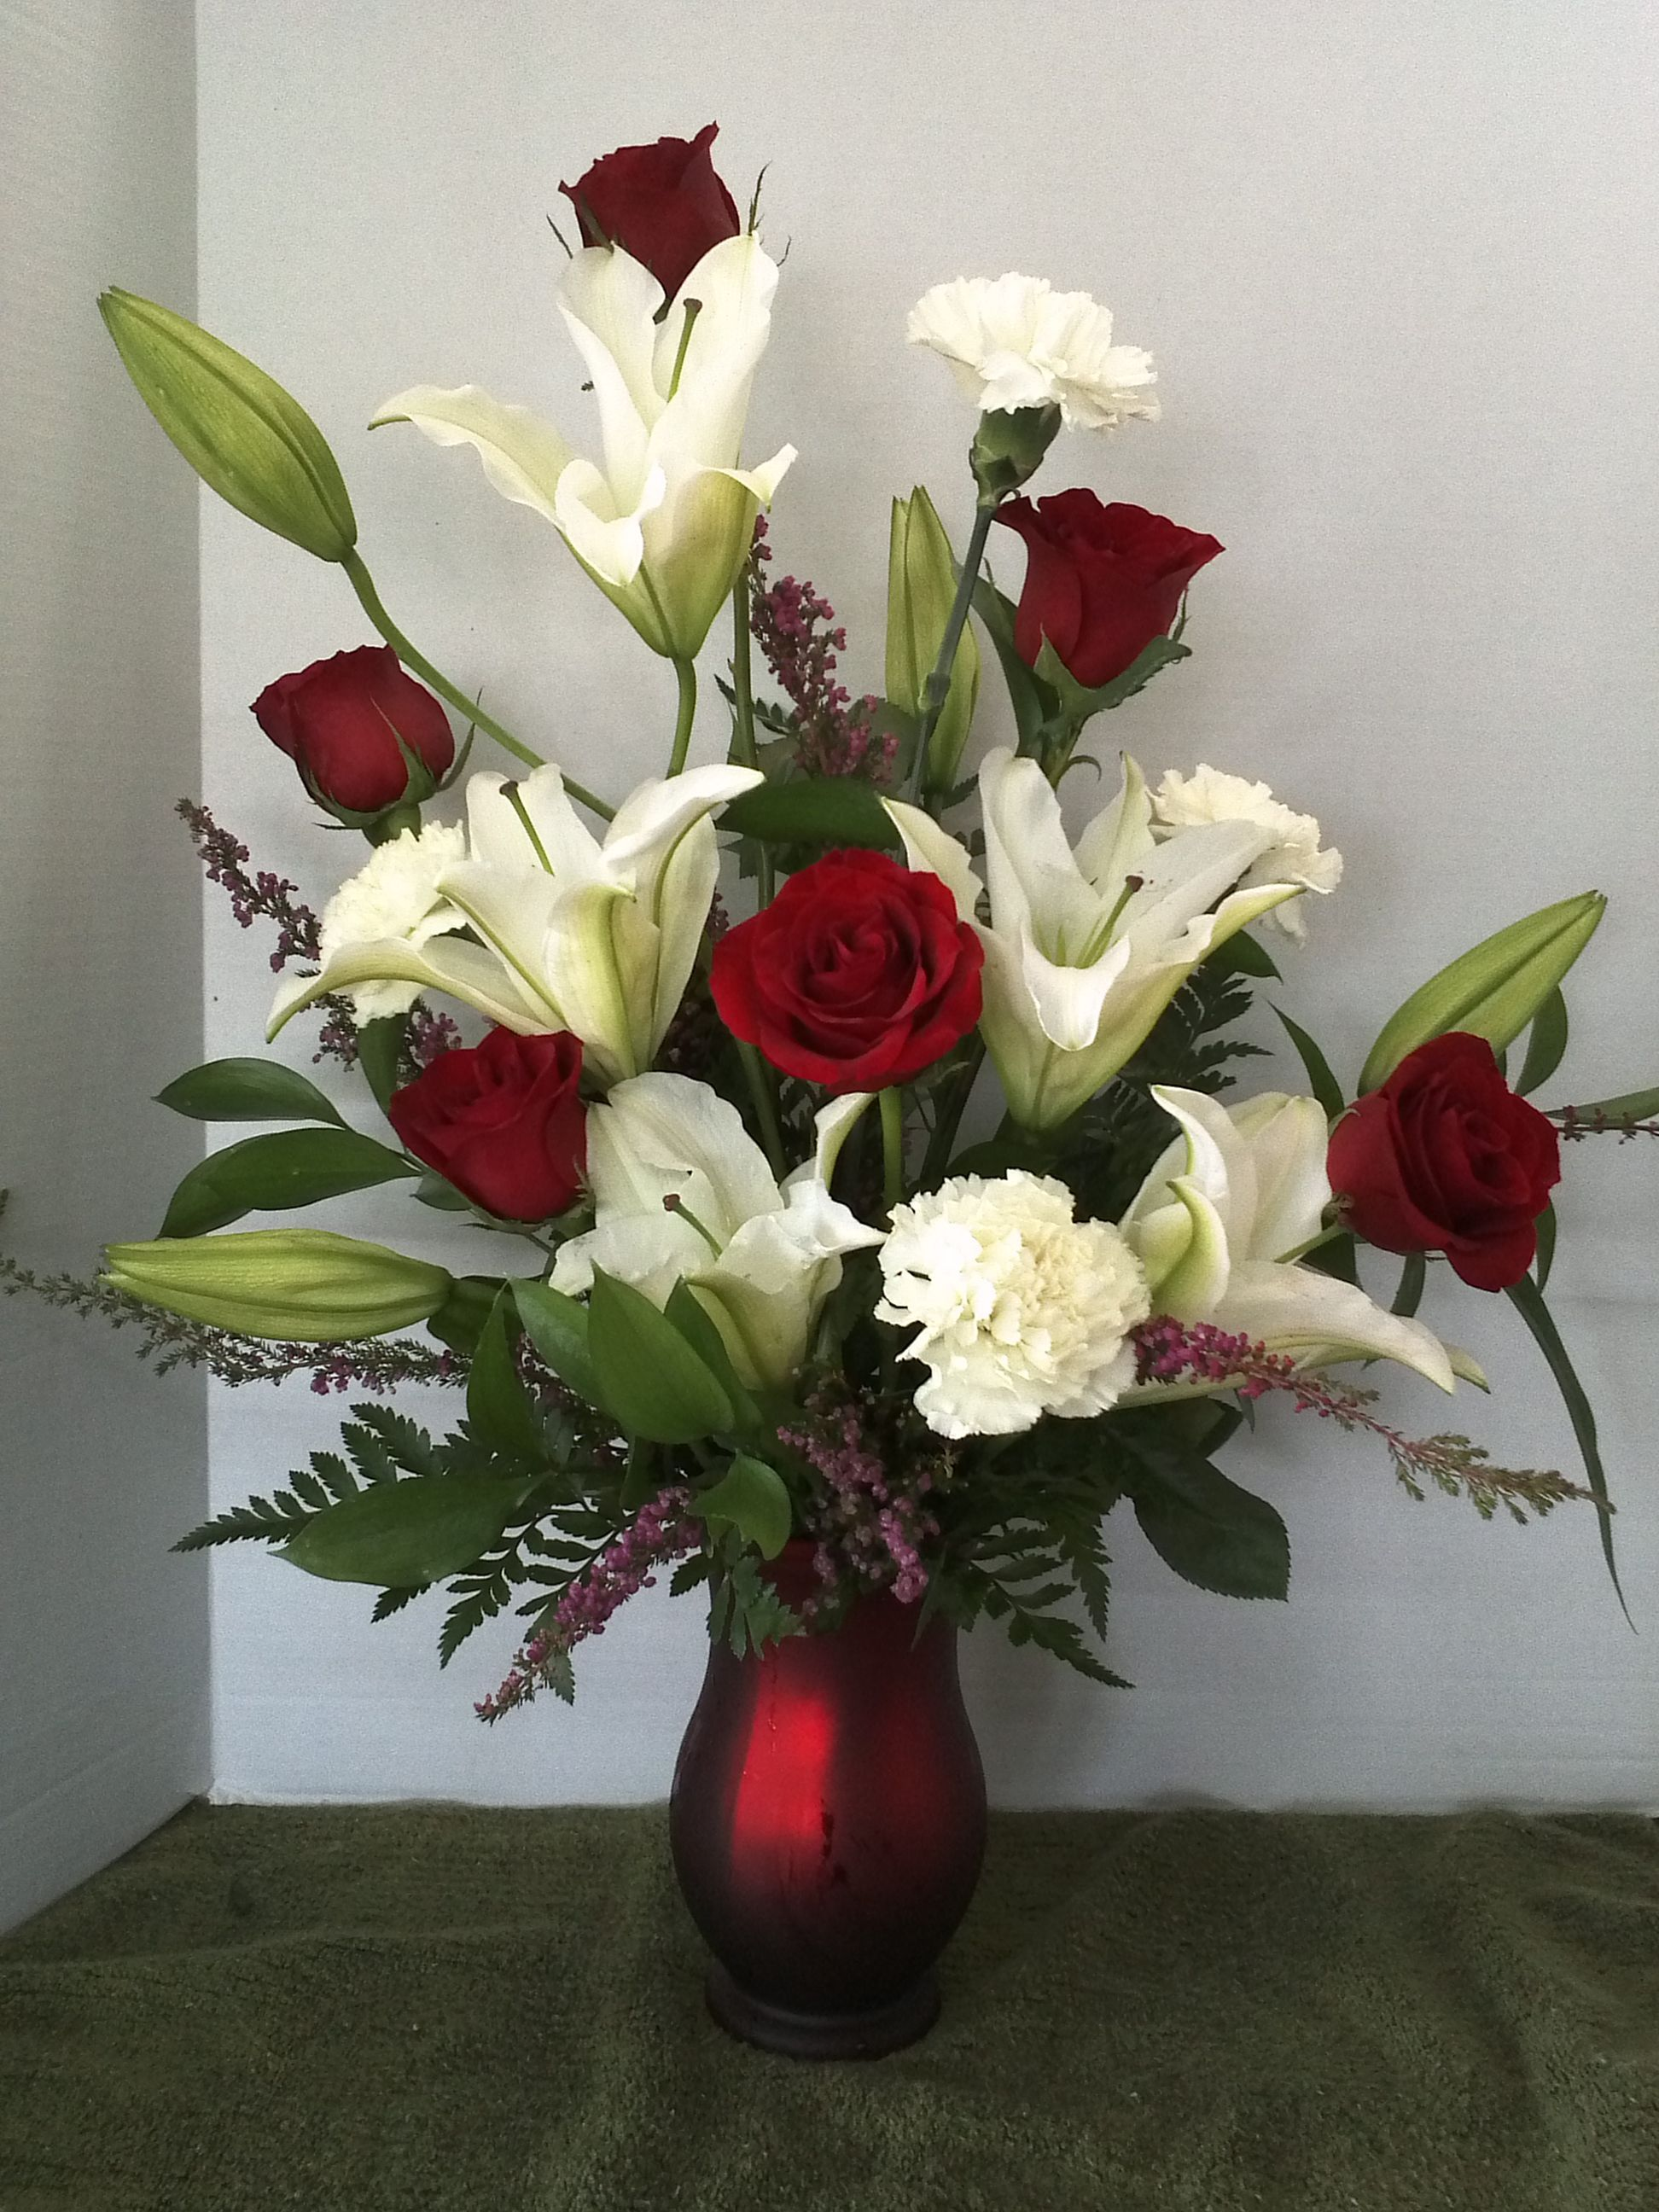 Outstanding 25 Beautiful Valentines Day Flowers Arrangements For Your Beloved People   D Valentines Flowers Flower Vase Arrangements Flower Arrangements